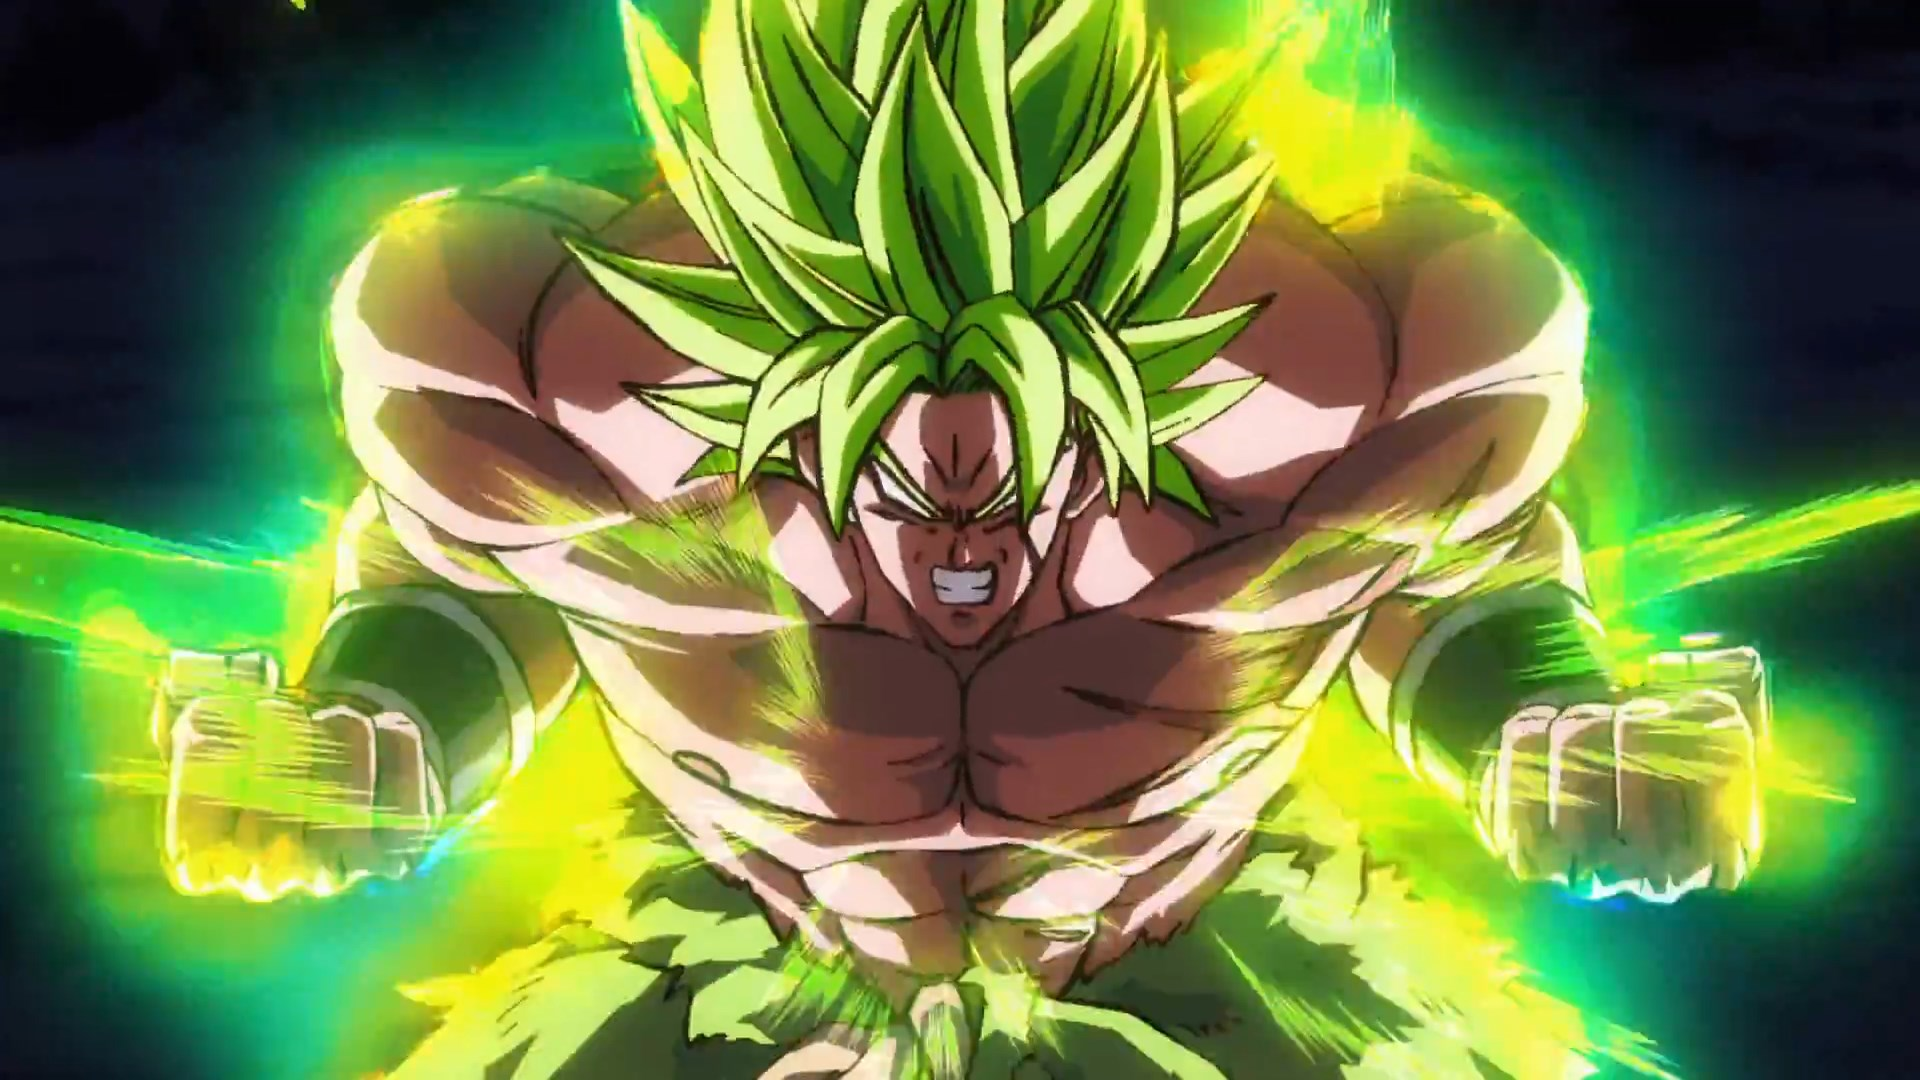 Wallpapers De Dragon Ball Super Broly